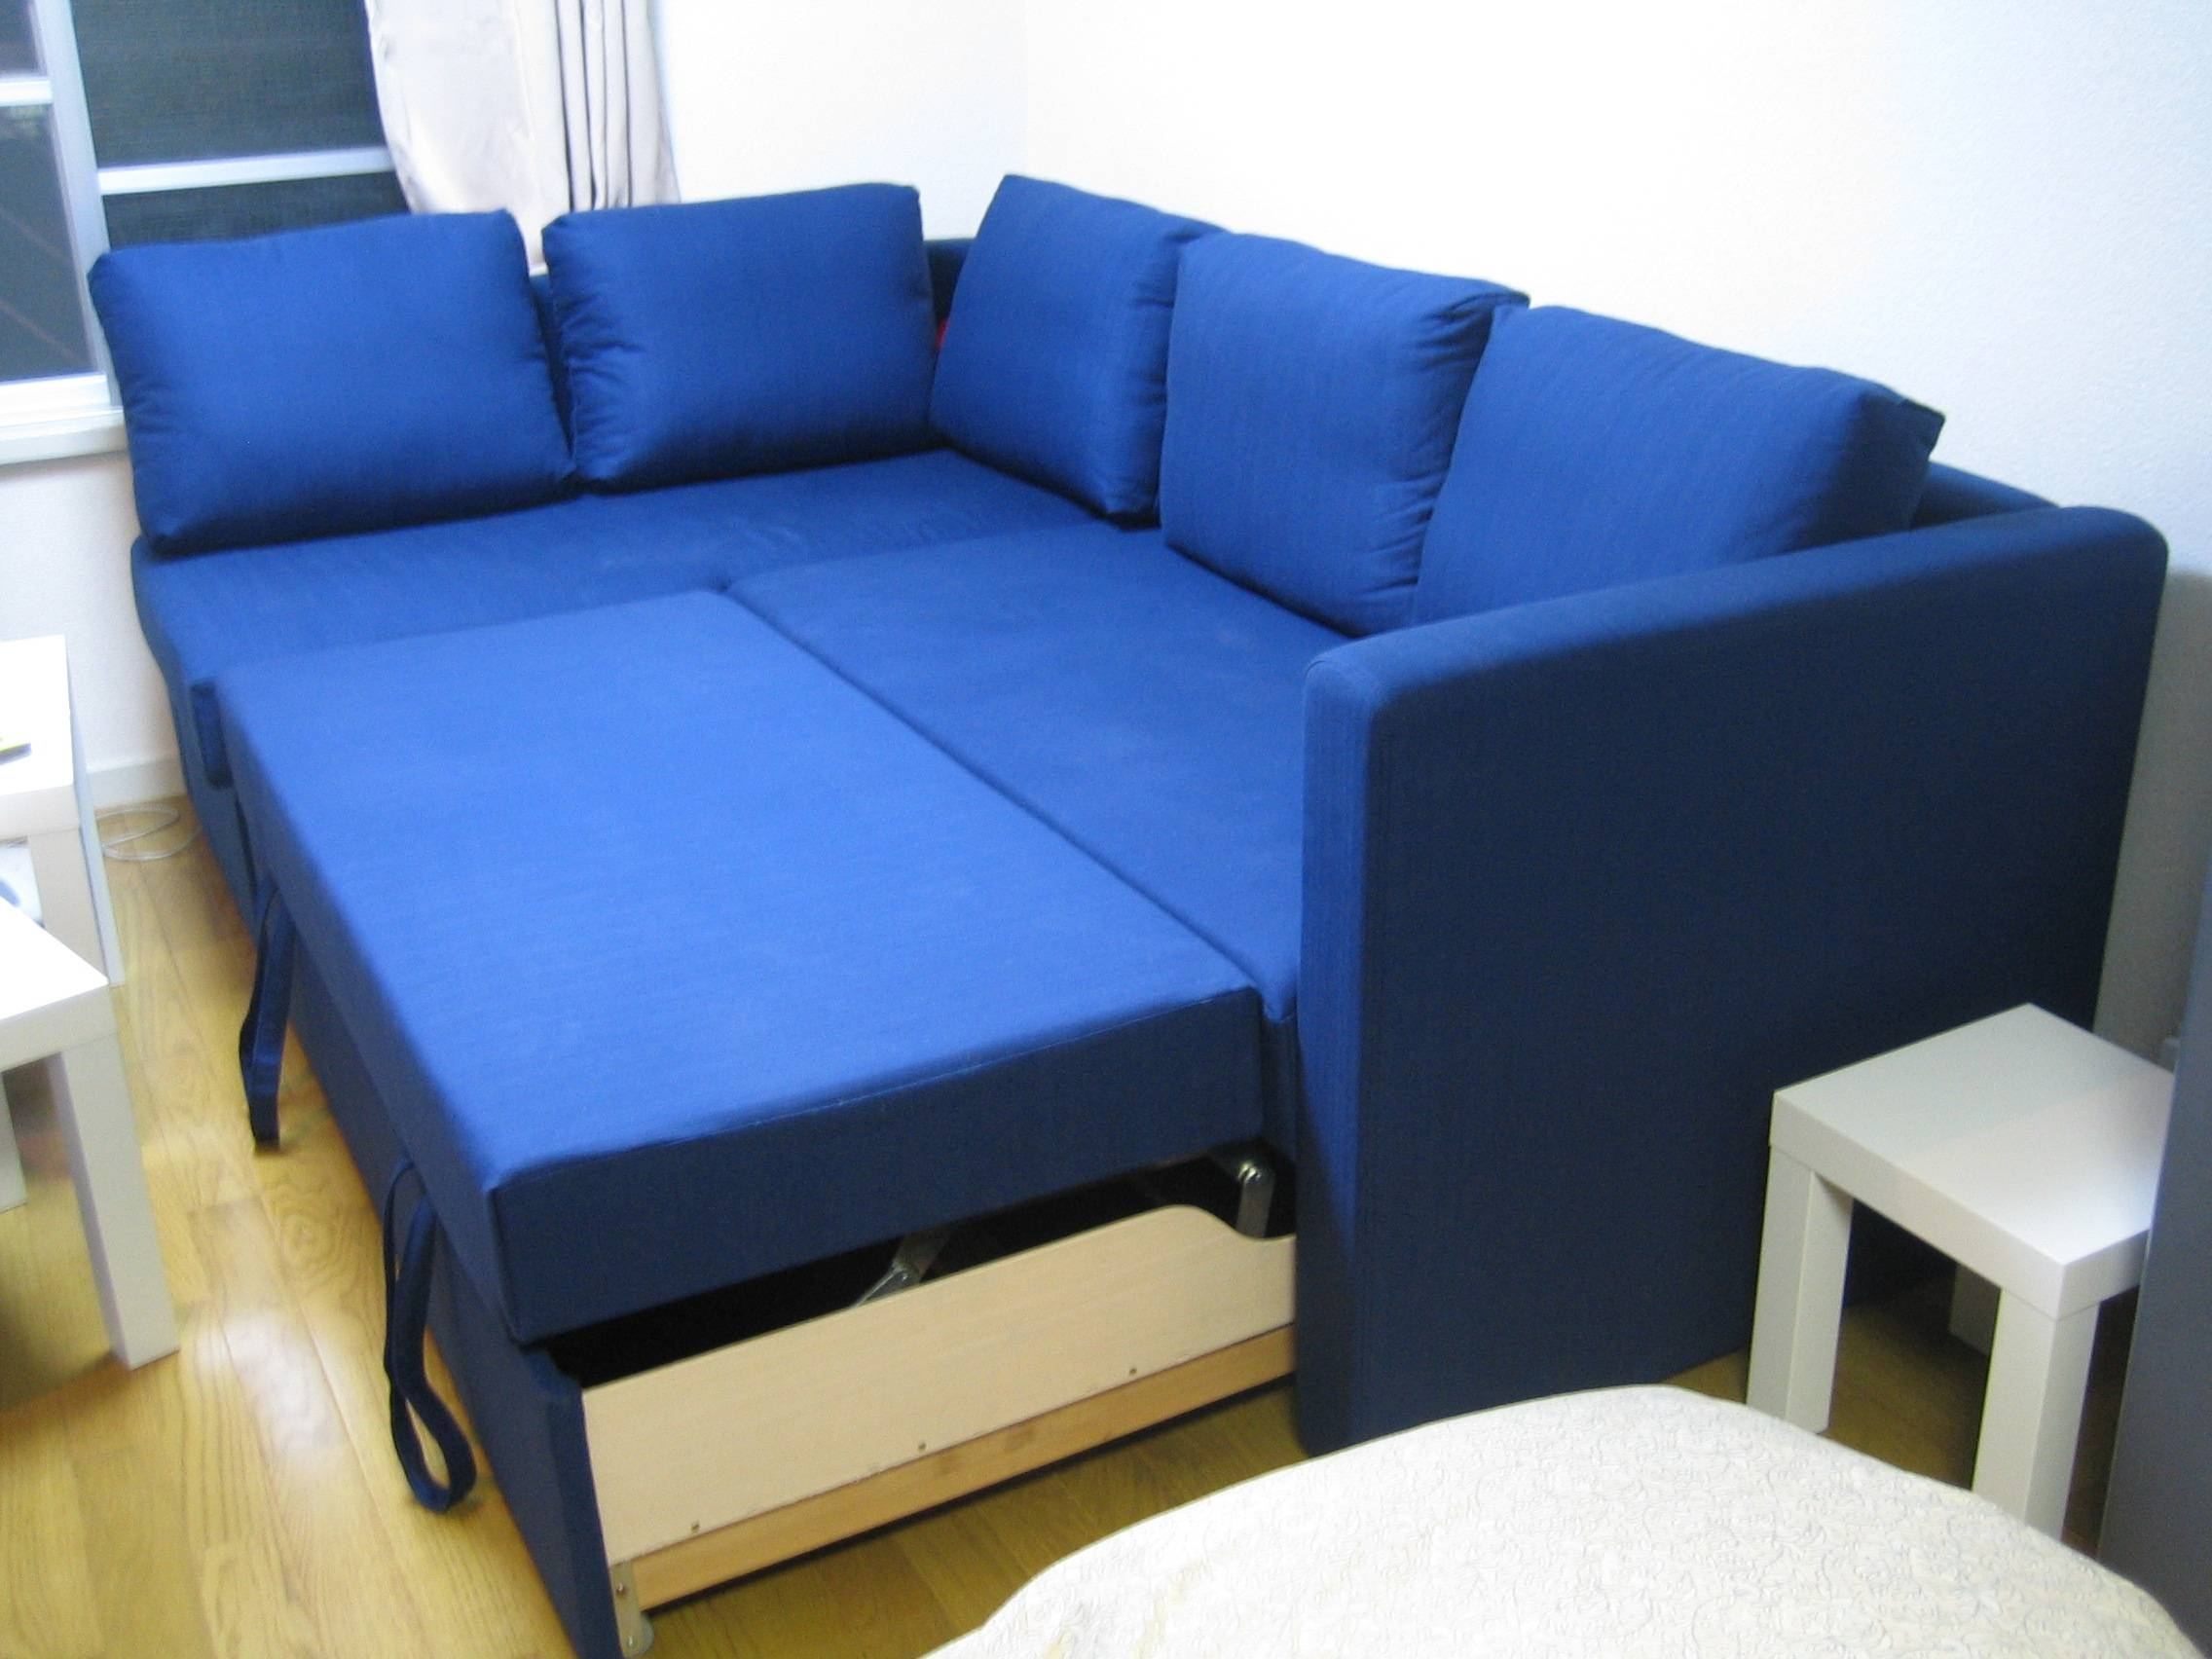 Furniture: Ikea Sofa Beds | Ikea Storage Sofa Bed | Ikea Sofa Beds throughout Ikea Sofa Storage (Image 14 of 25)